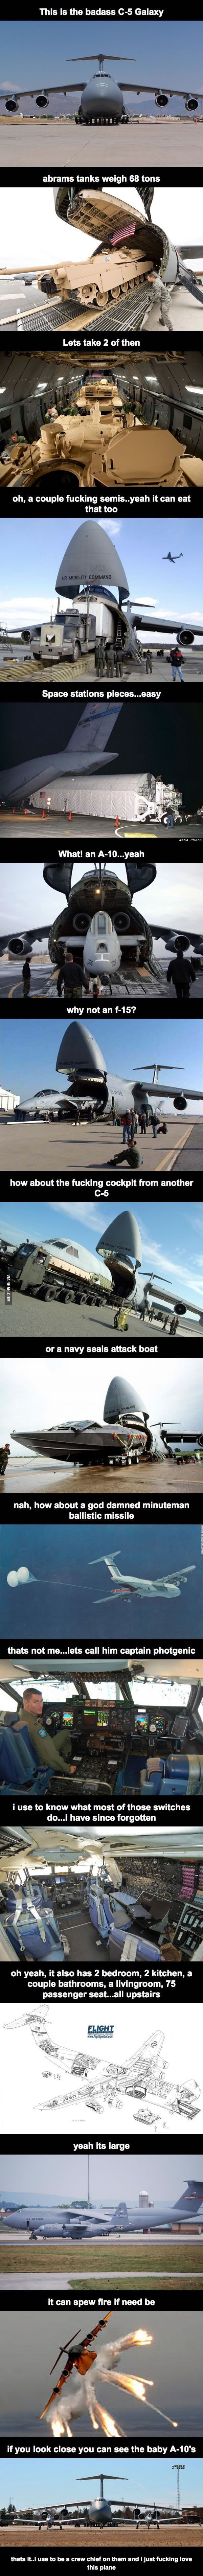 Minus the pic of a C17, it's dope